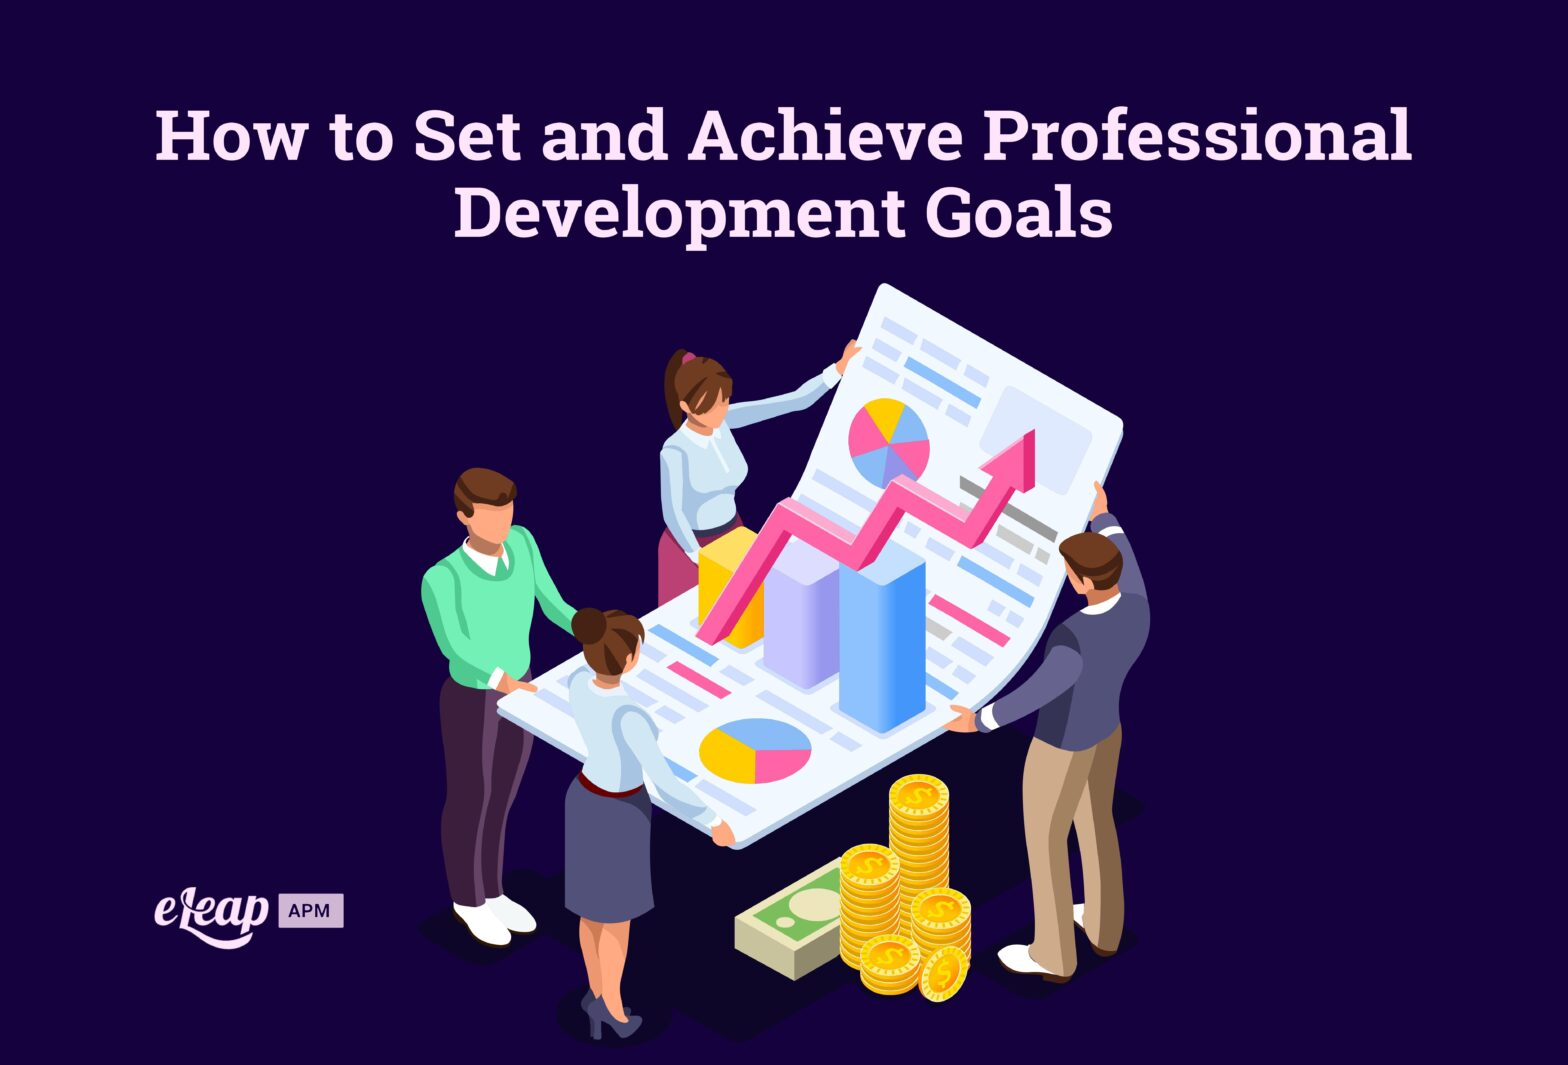 How to Set and Achieve Professional Development Goals